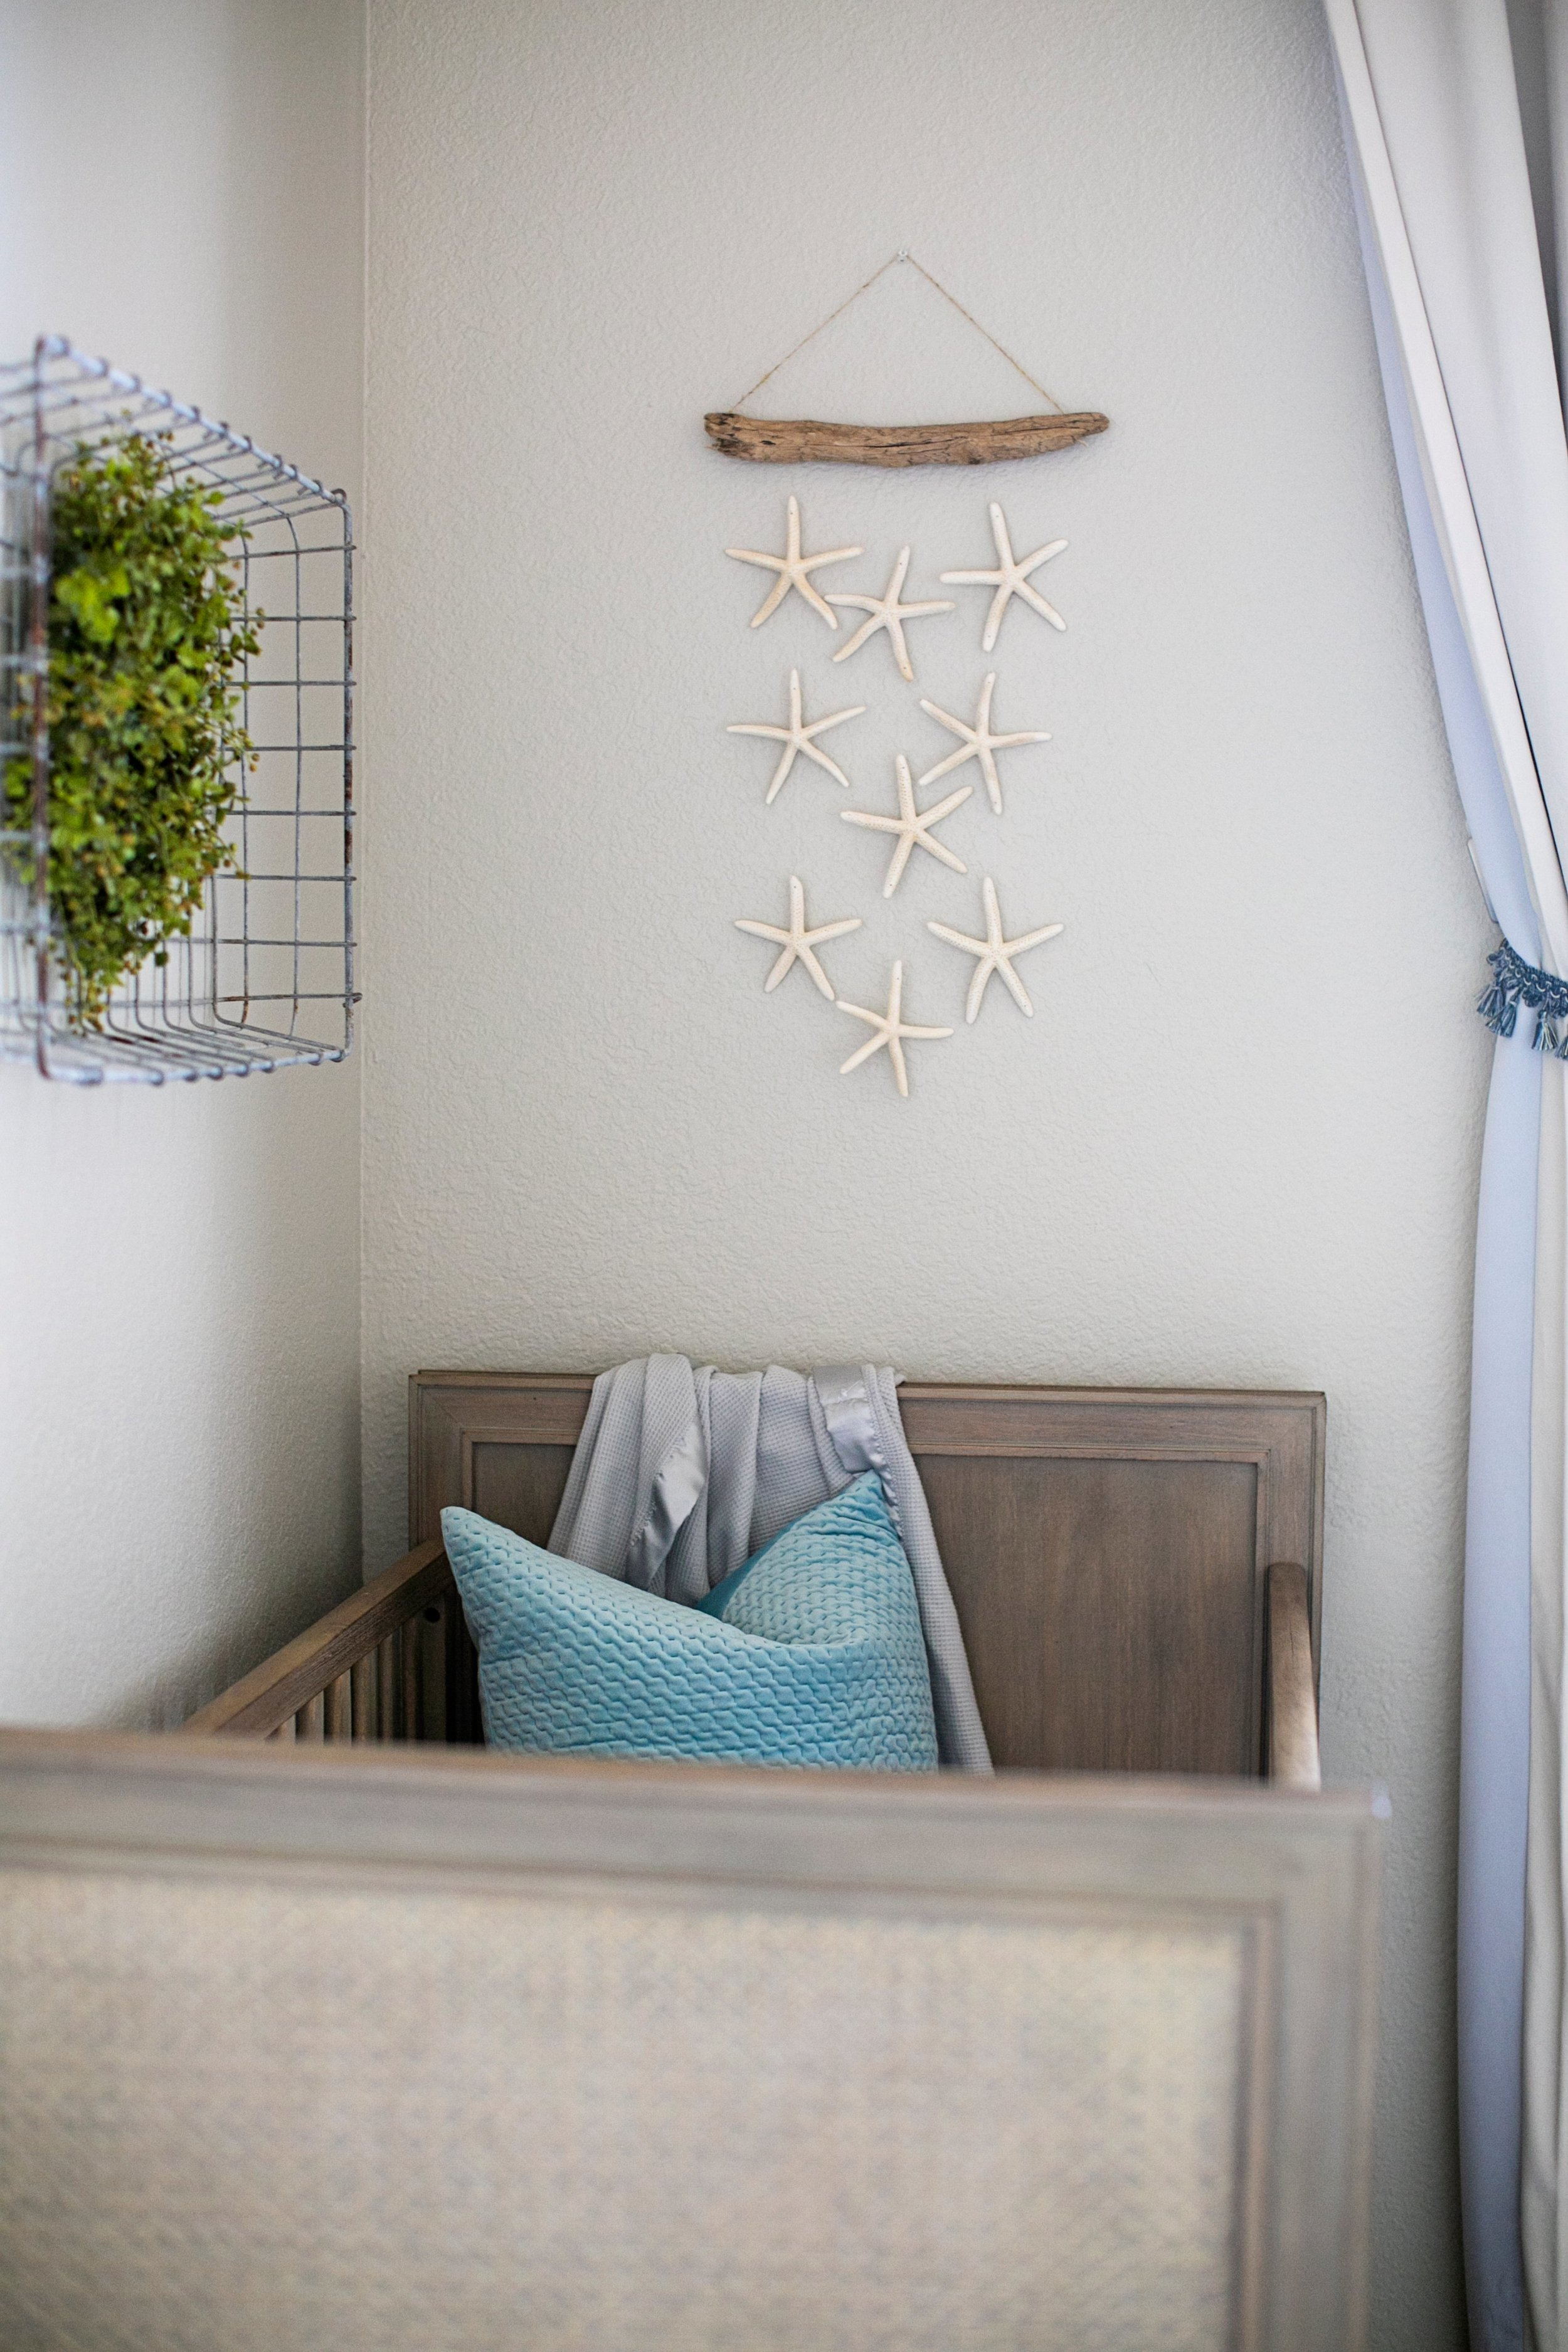 Linda_McMillan_Photography_Costal_Beach_Nursery_13.jpg